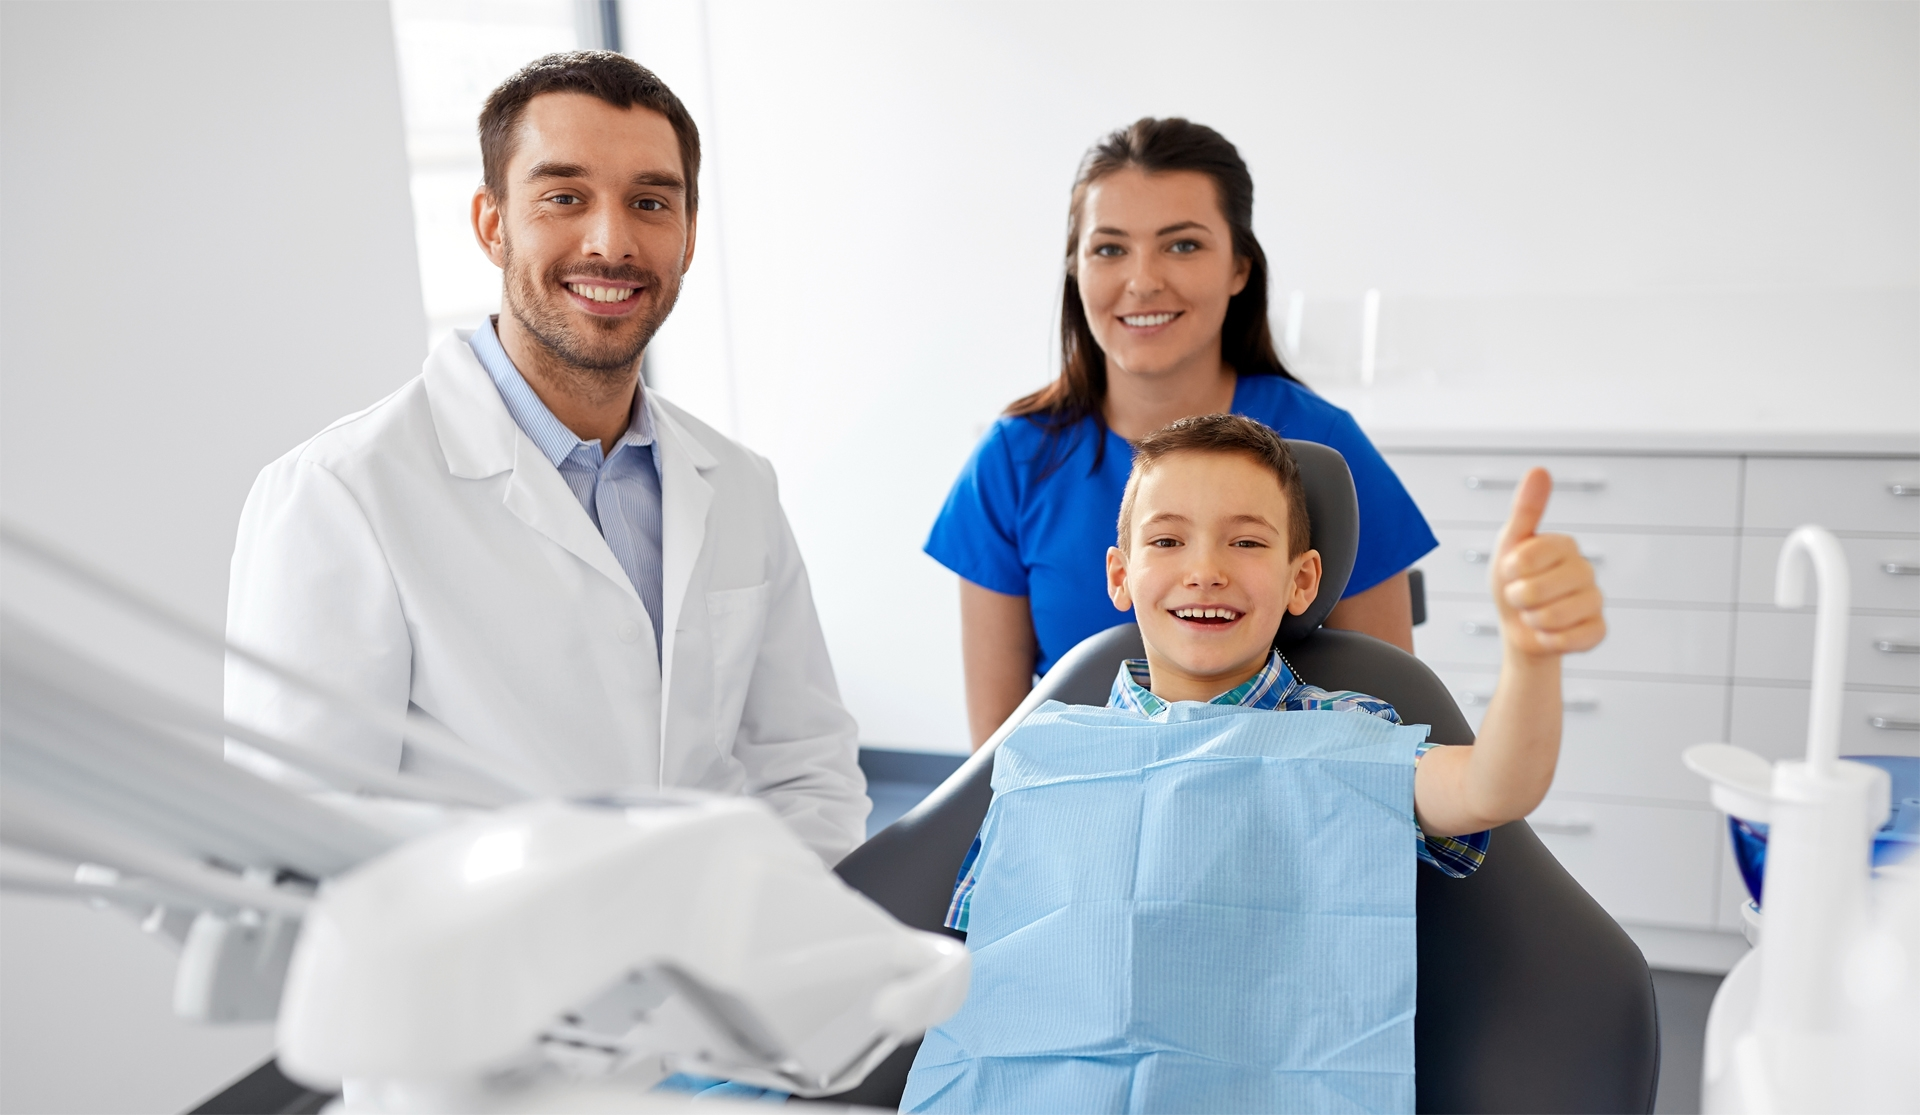 Children Dental Benefits Schedule (CDBS) to continue from 2019 through to 2022